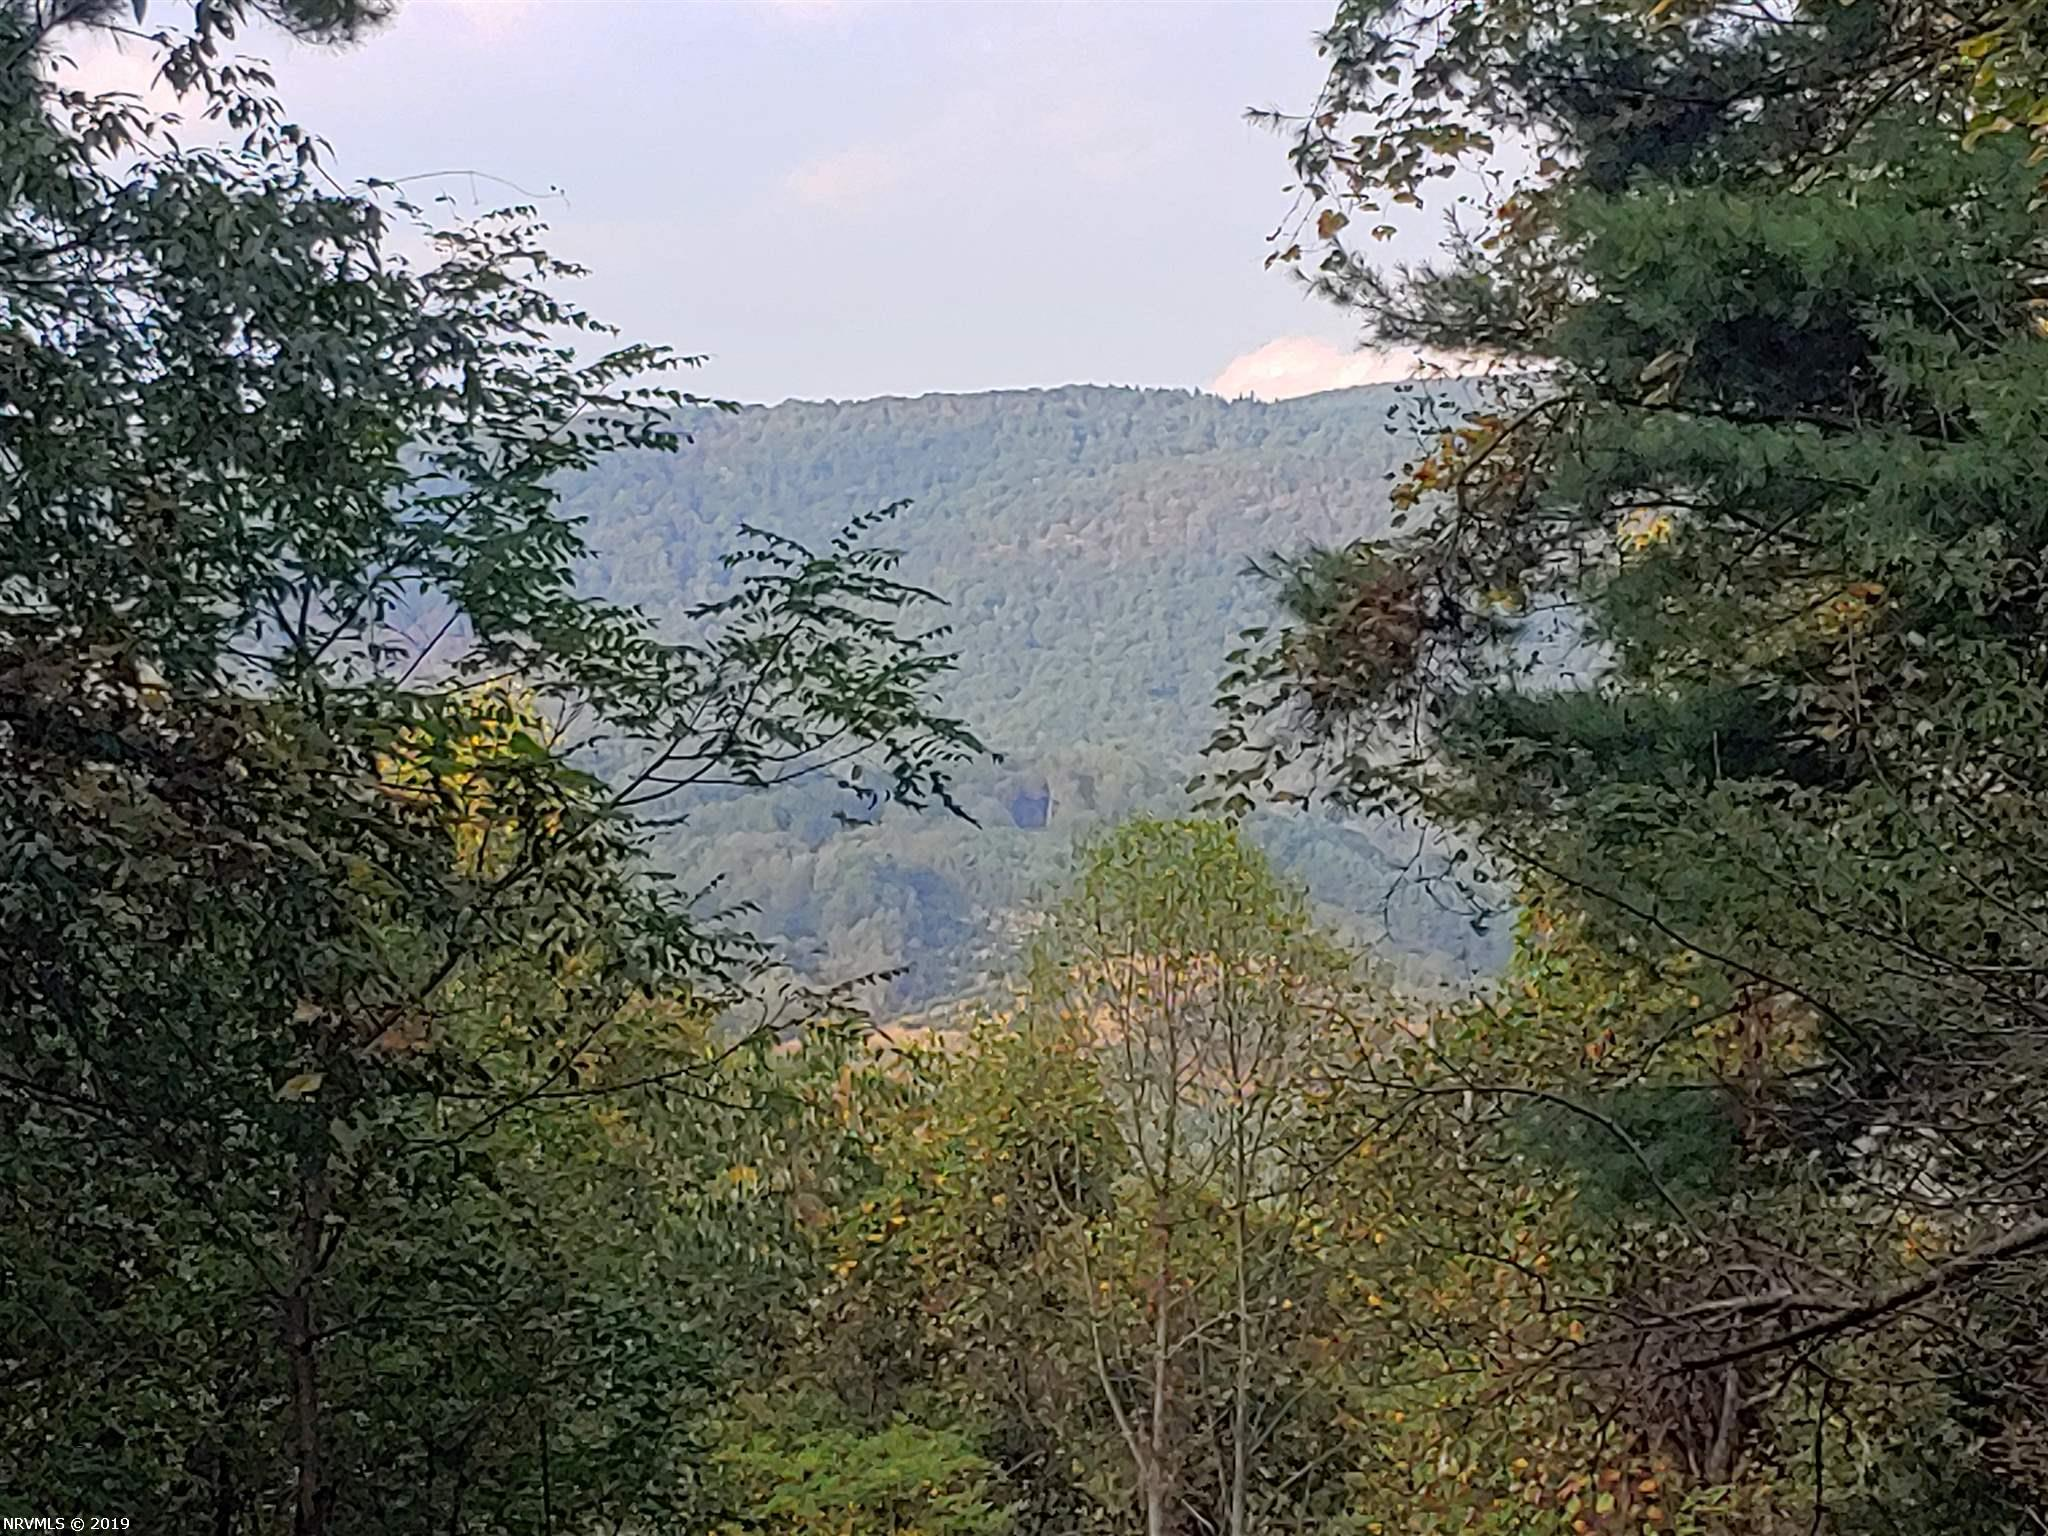 Approximately 30 acres of mostly wooded land in Grayson County, VA! Very private setting with gorgeous views of the surrounding area. Only 2-3 miles from a national forest with horse trails. Use for recreational purposes such as hunting and camping or clear off some land and build a home!